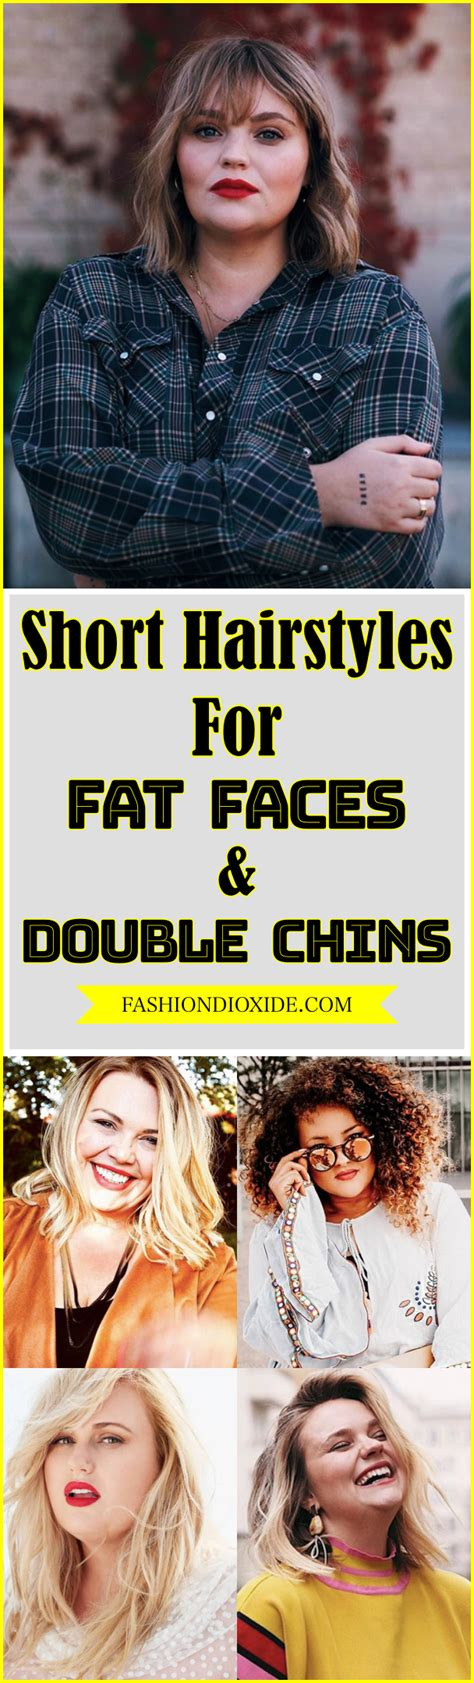 100 short hairstyles fat faces double chins fashiondioxide